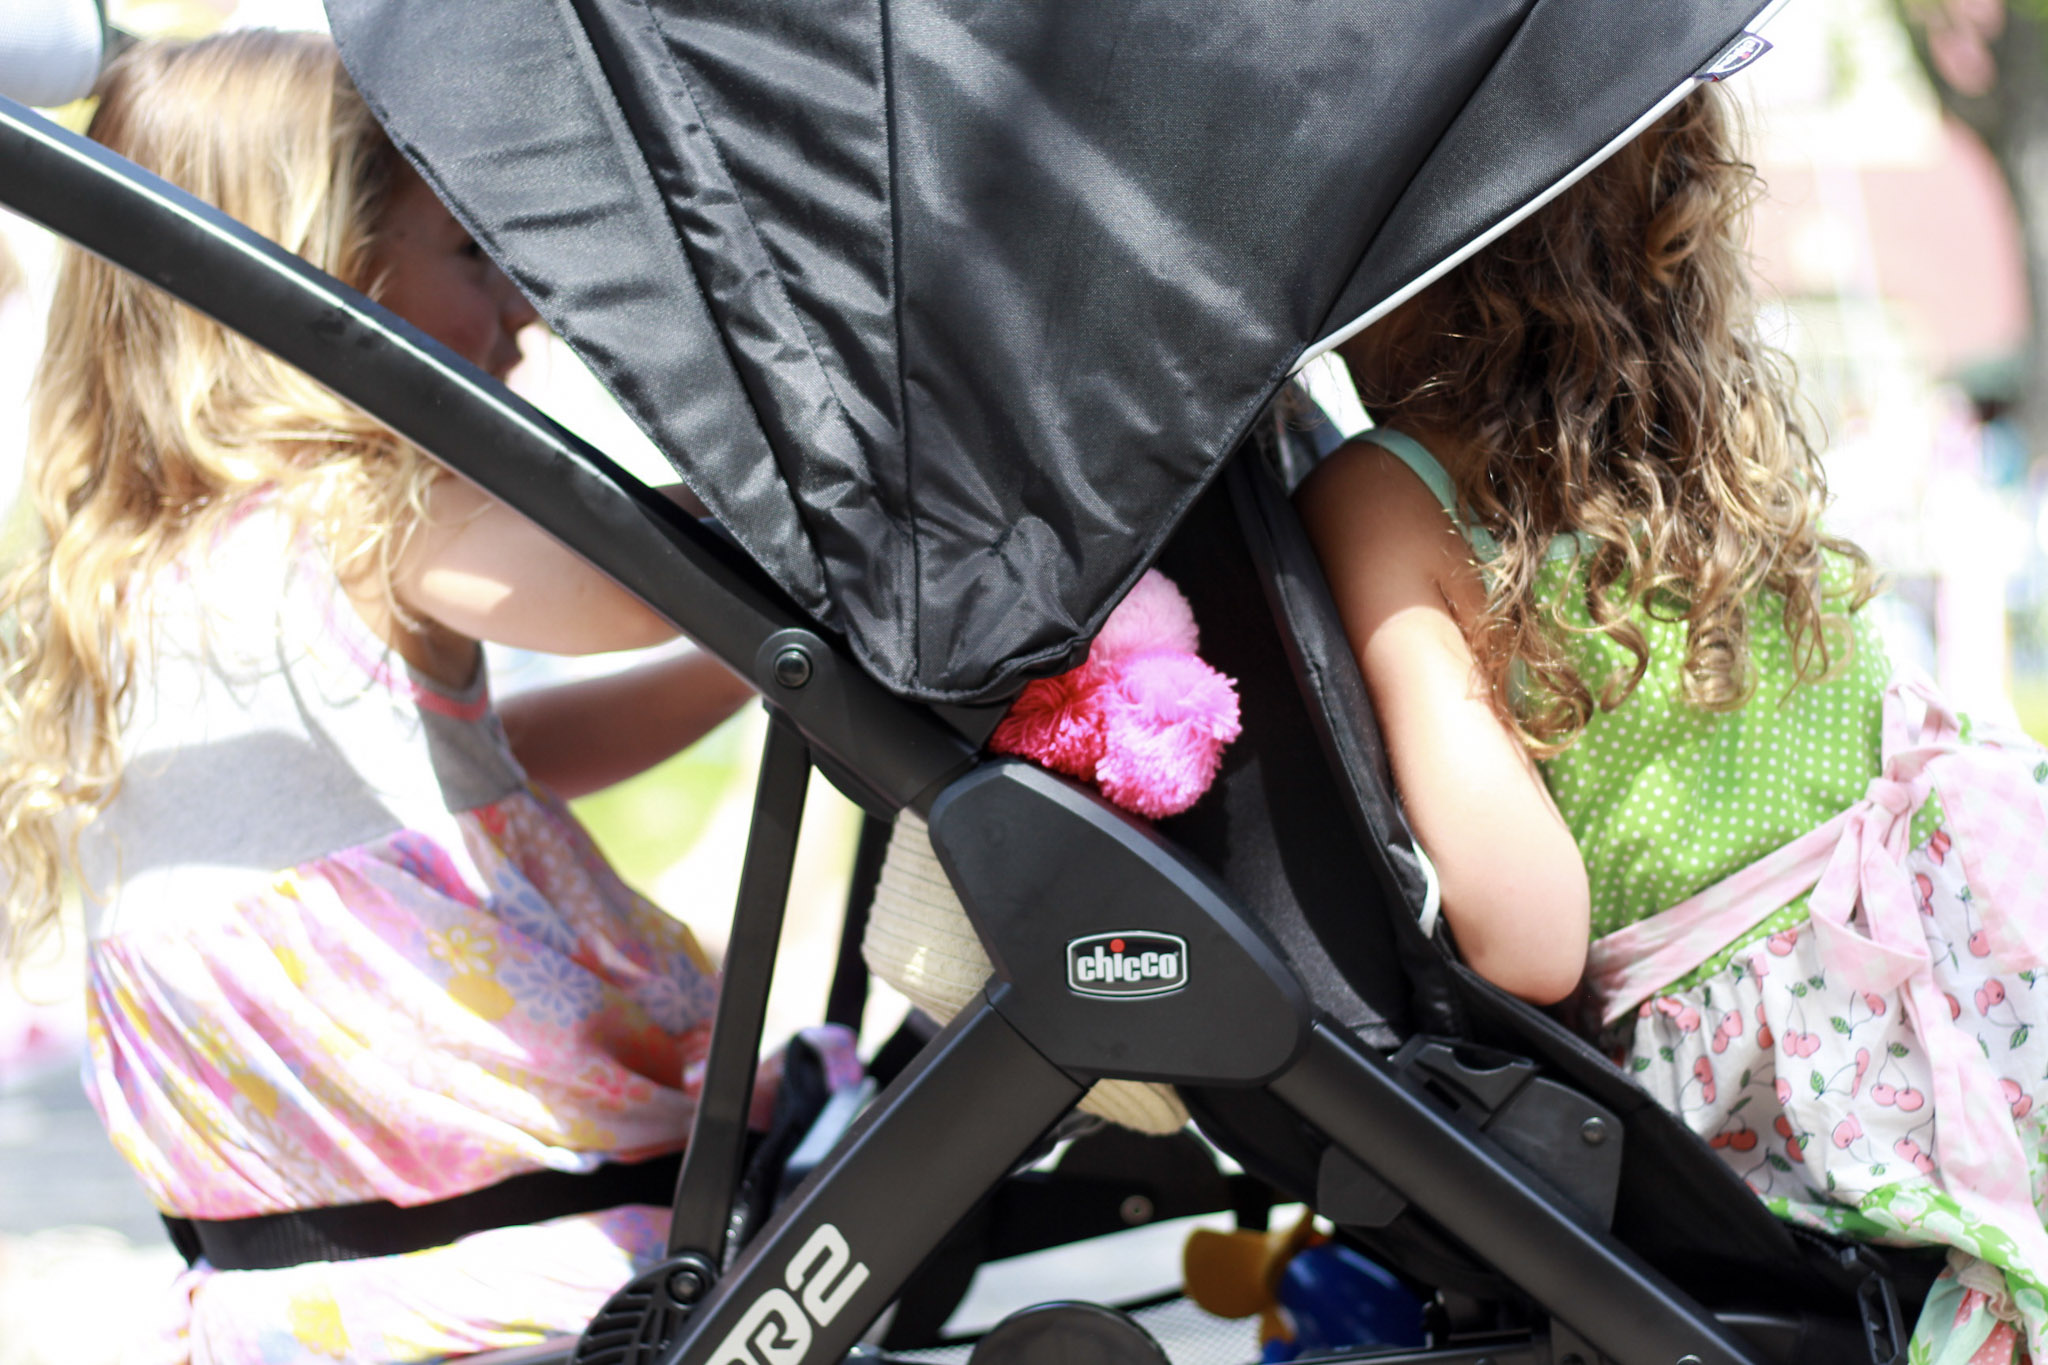 best stroller for 2, chicco